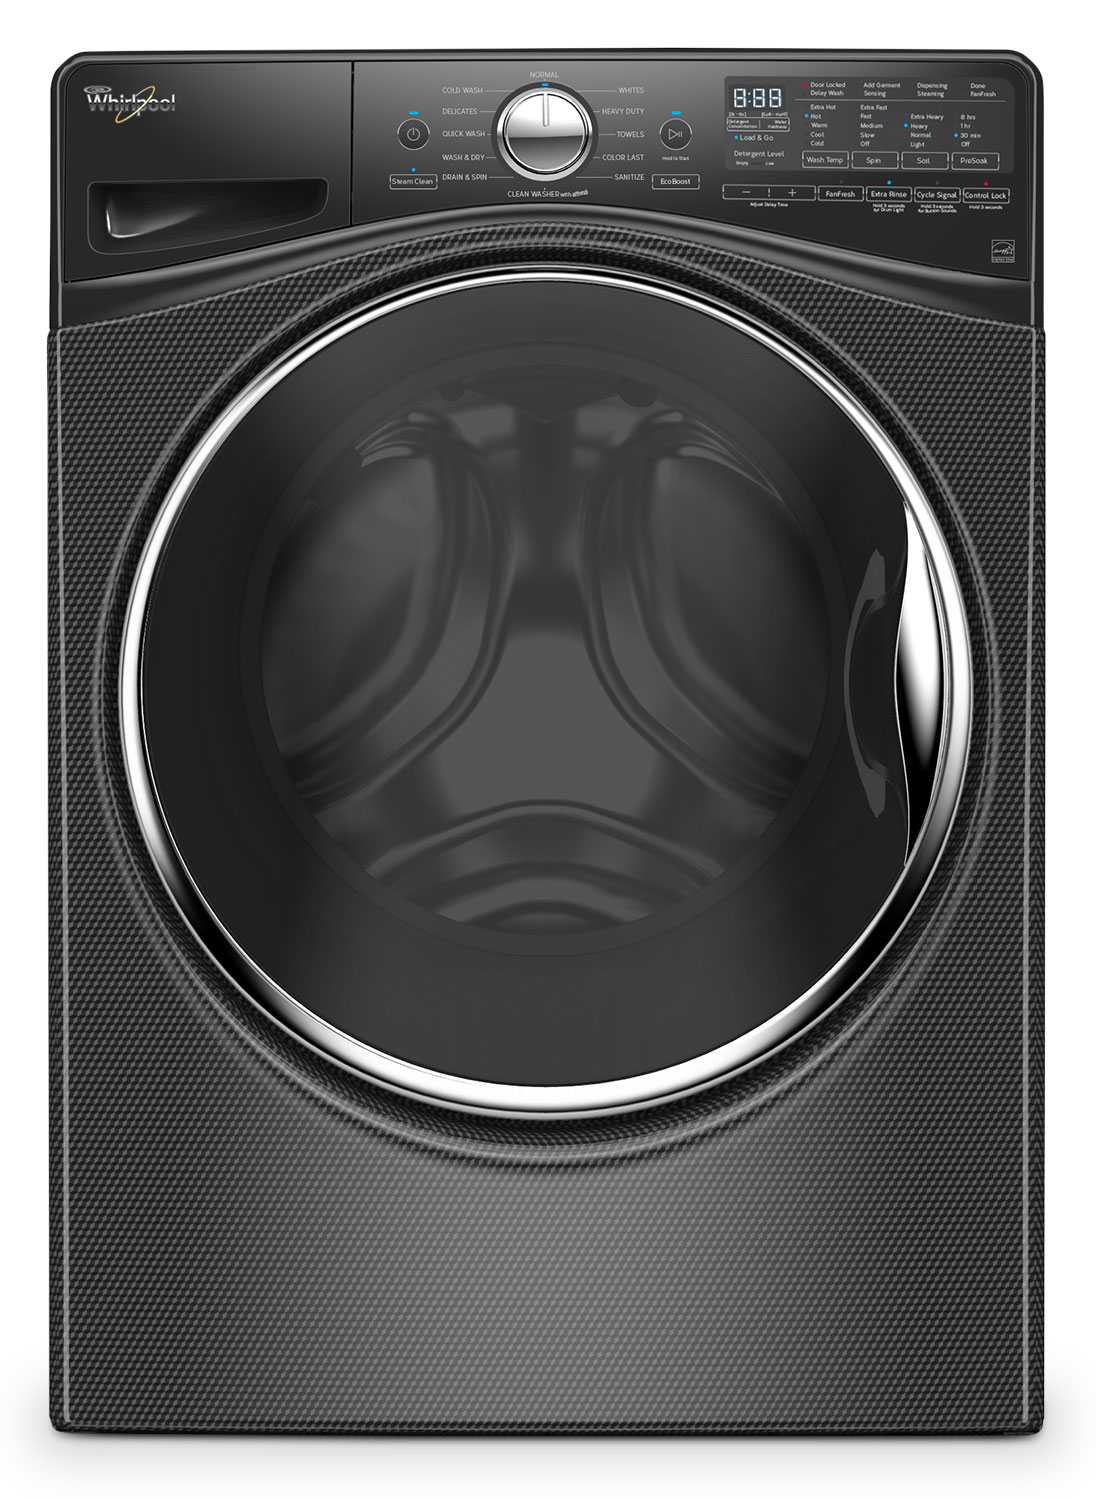 Washers and Dryers - Whirlpool Black Diamond Front-Load Washer (5.2 Cu. Ft. IEC) - WFW92HEFBD